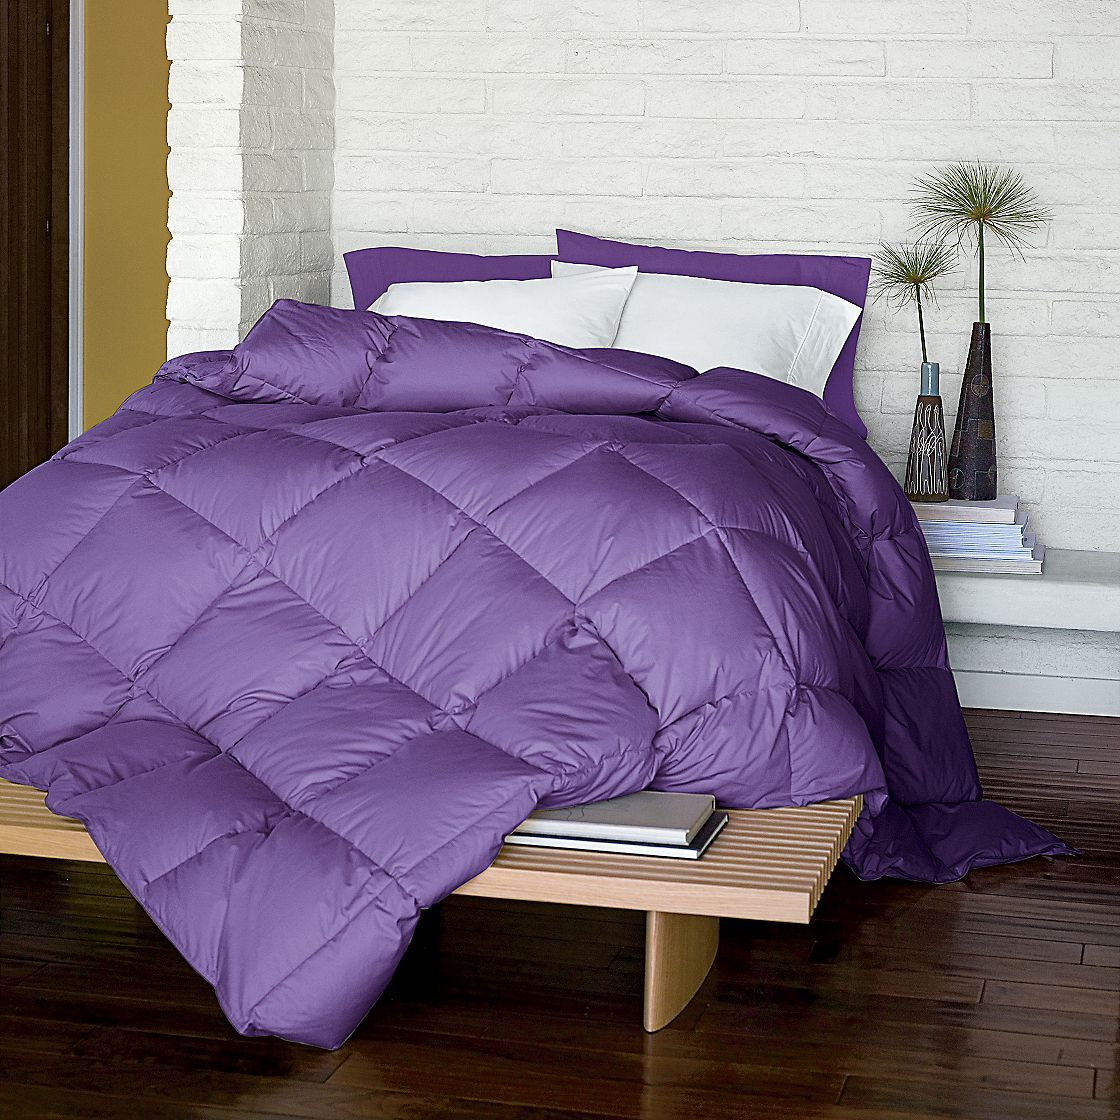 set overstock bath on kathy alternative free bedding product purple down piece over shipping comforter orders reversible ireland home